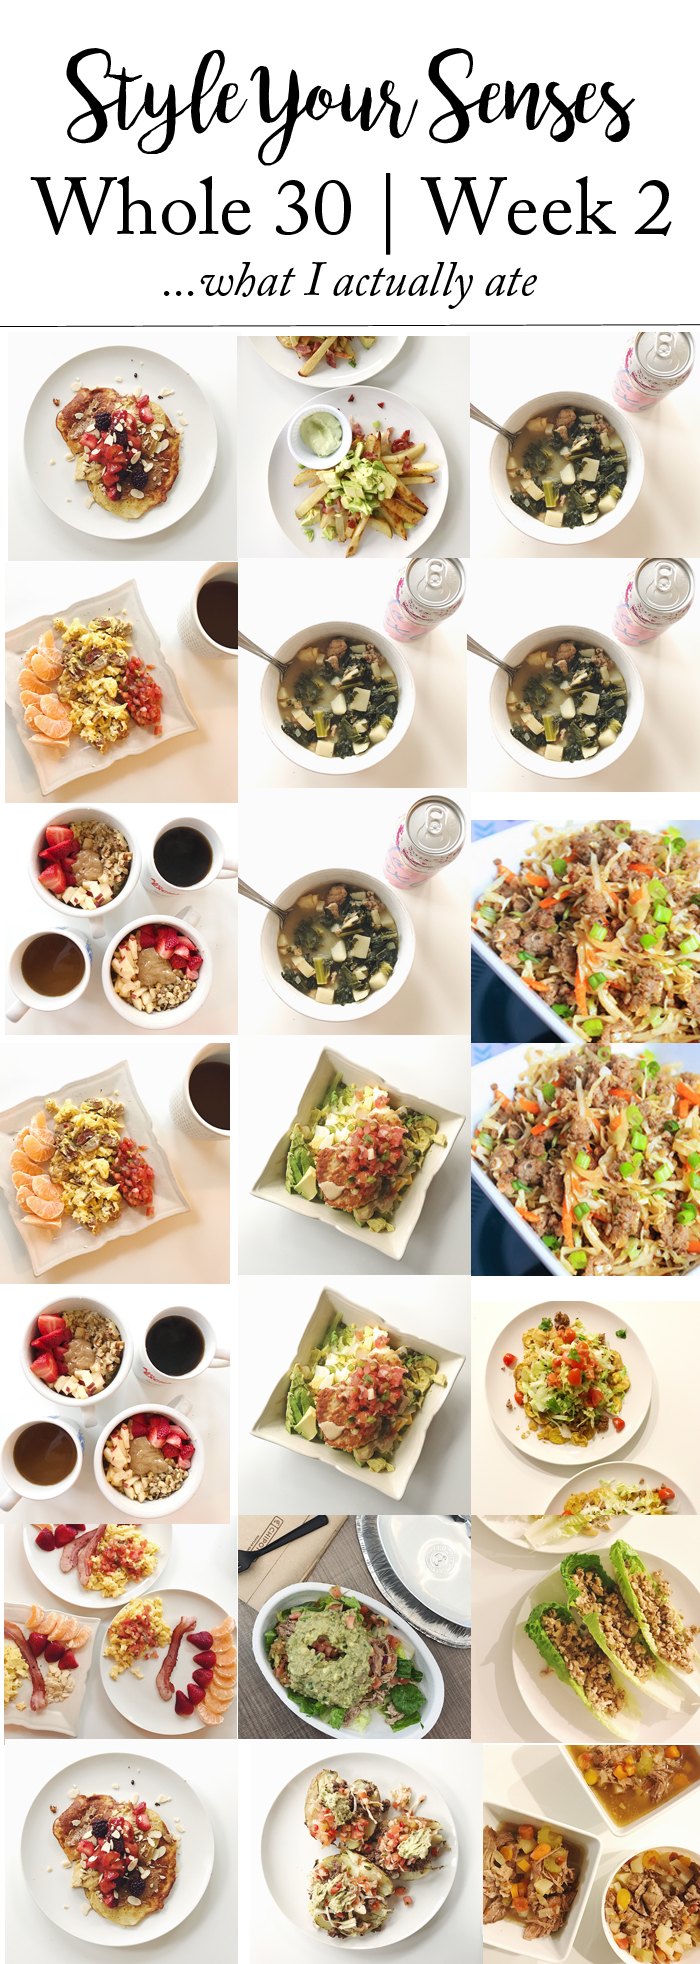 Whole30 Week 2 Meal Plan and details on what I ate for each meal featured by popular Texas lifestyle blogger, Style Your Senses